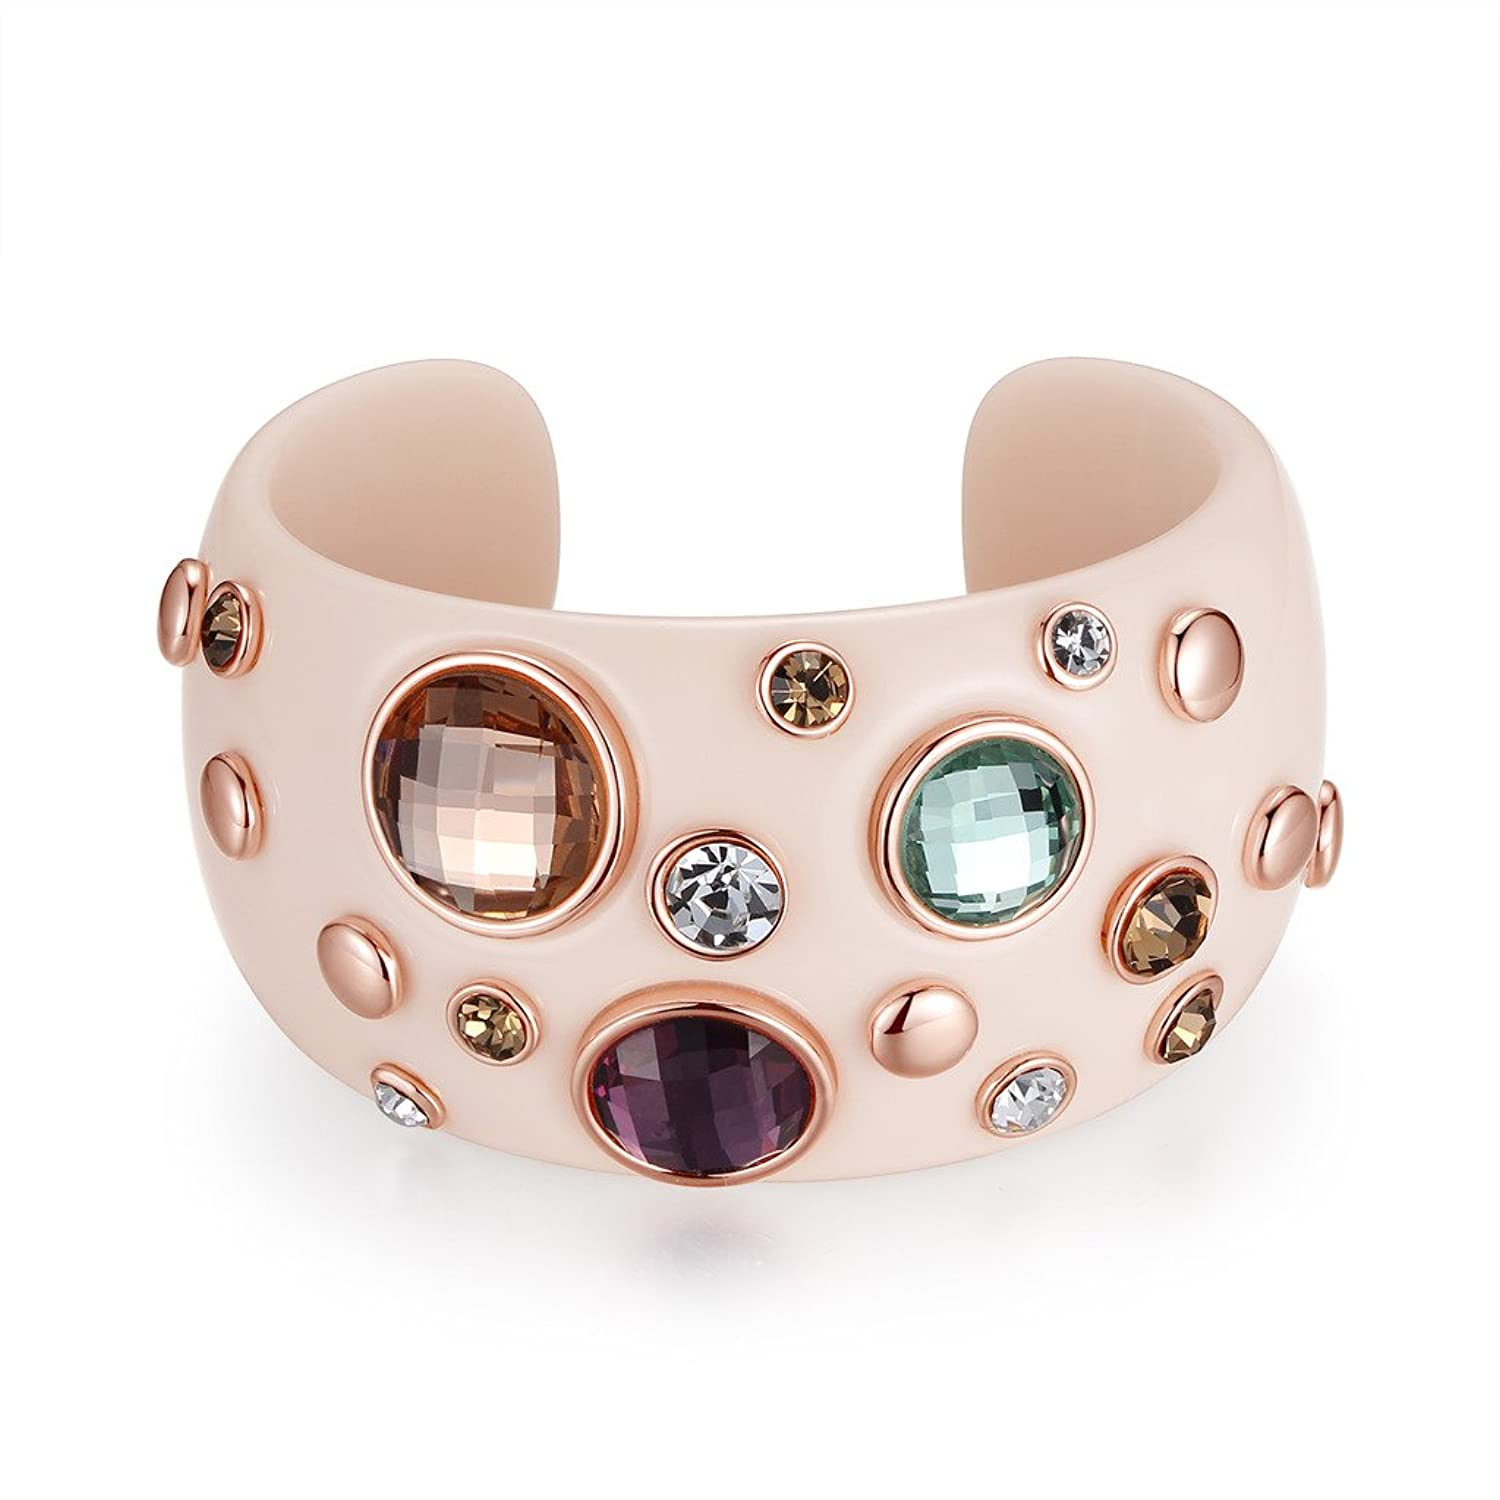 Kemstone Multicolor Cubic Zirconia Rose Gold in White Cuff Bracelet, Pretty Jewelry for Fashion Women